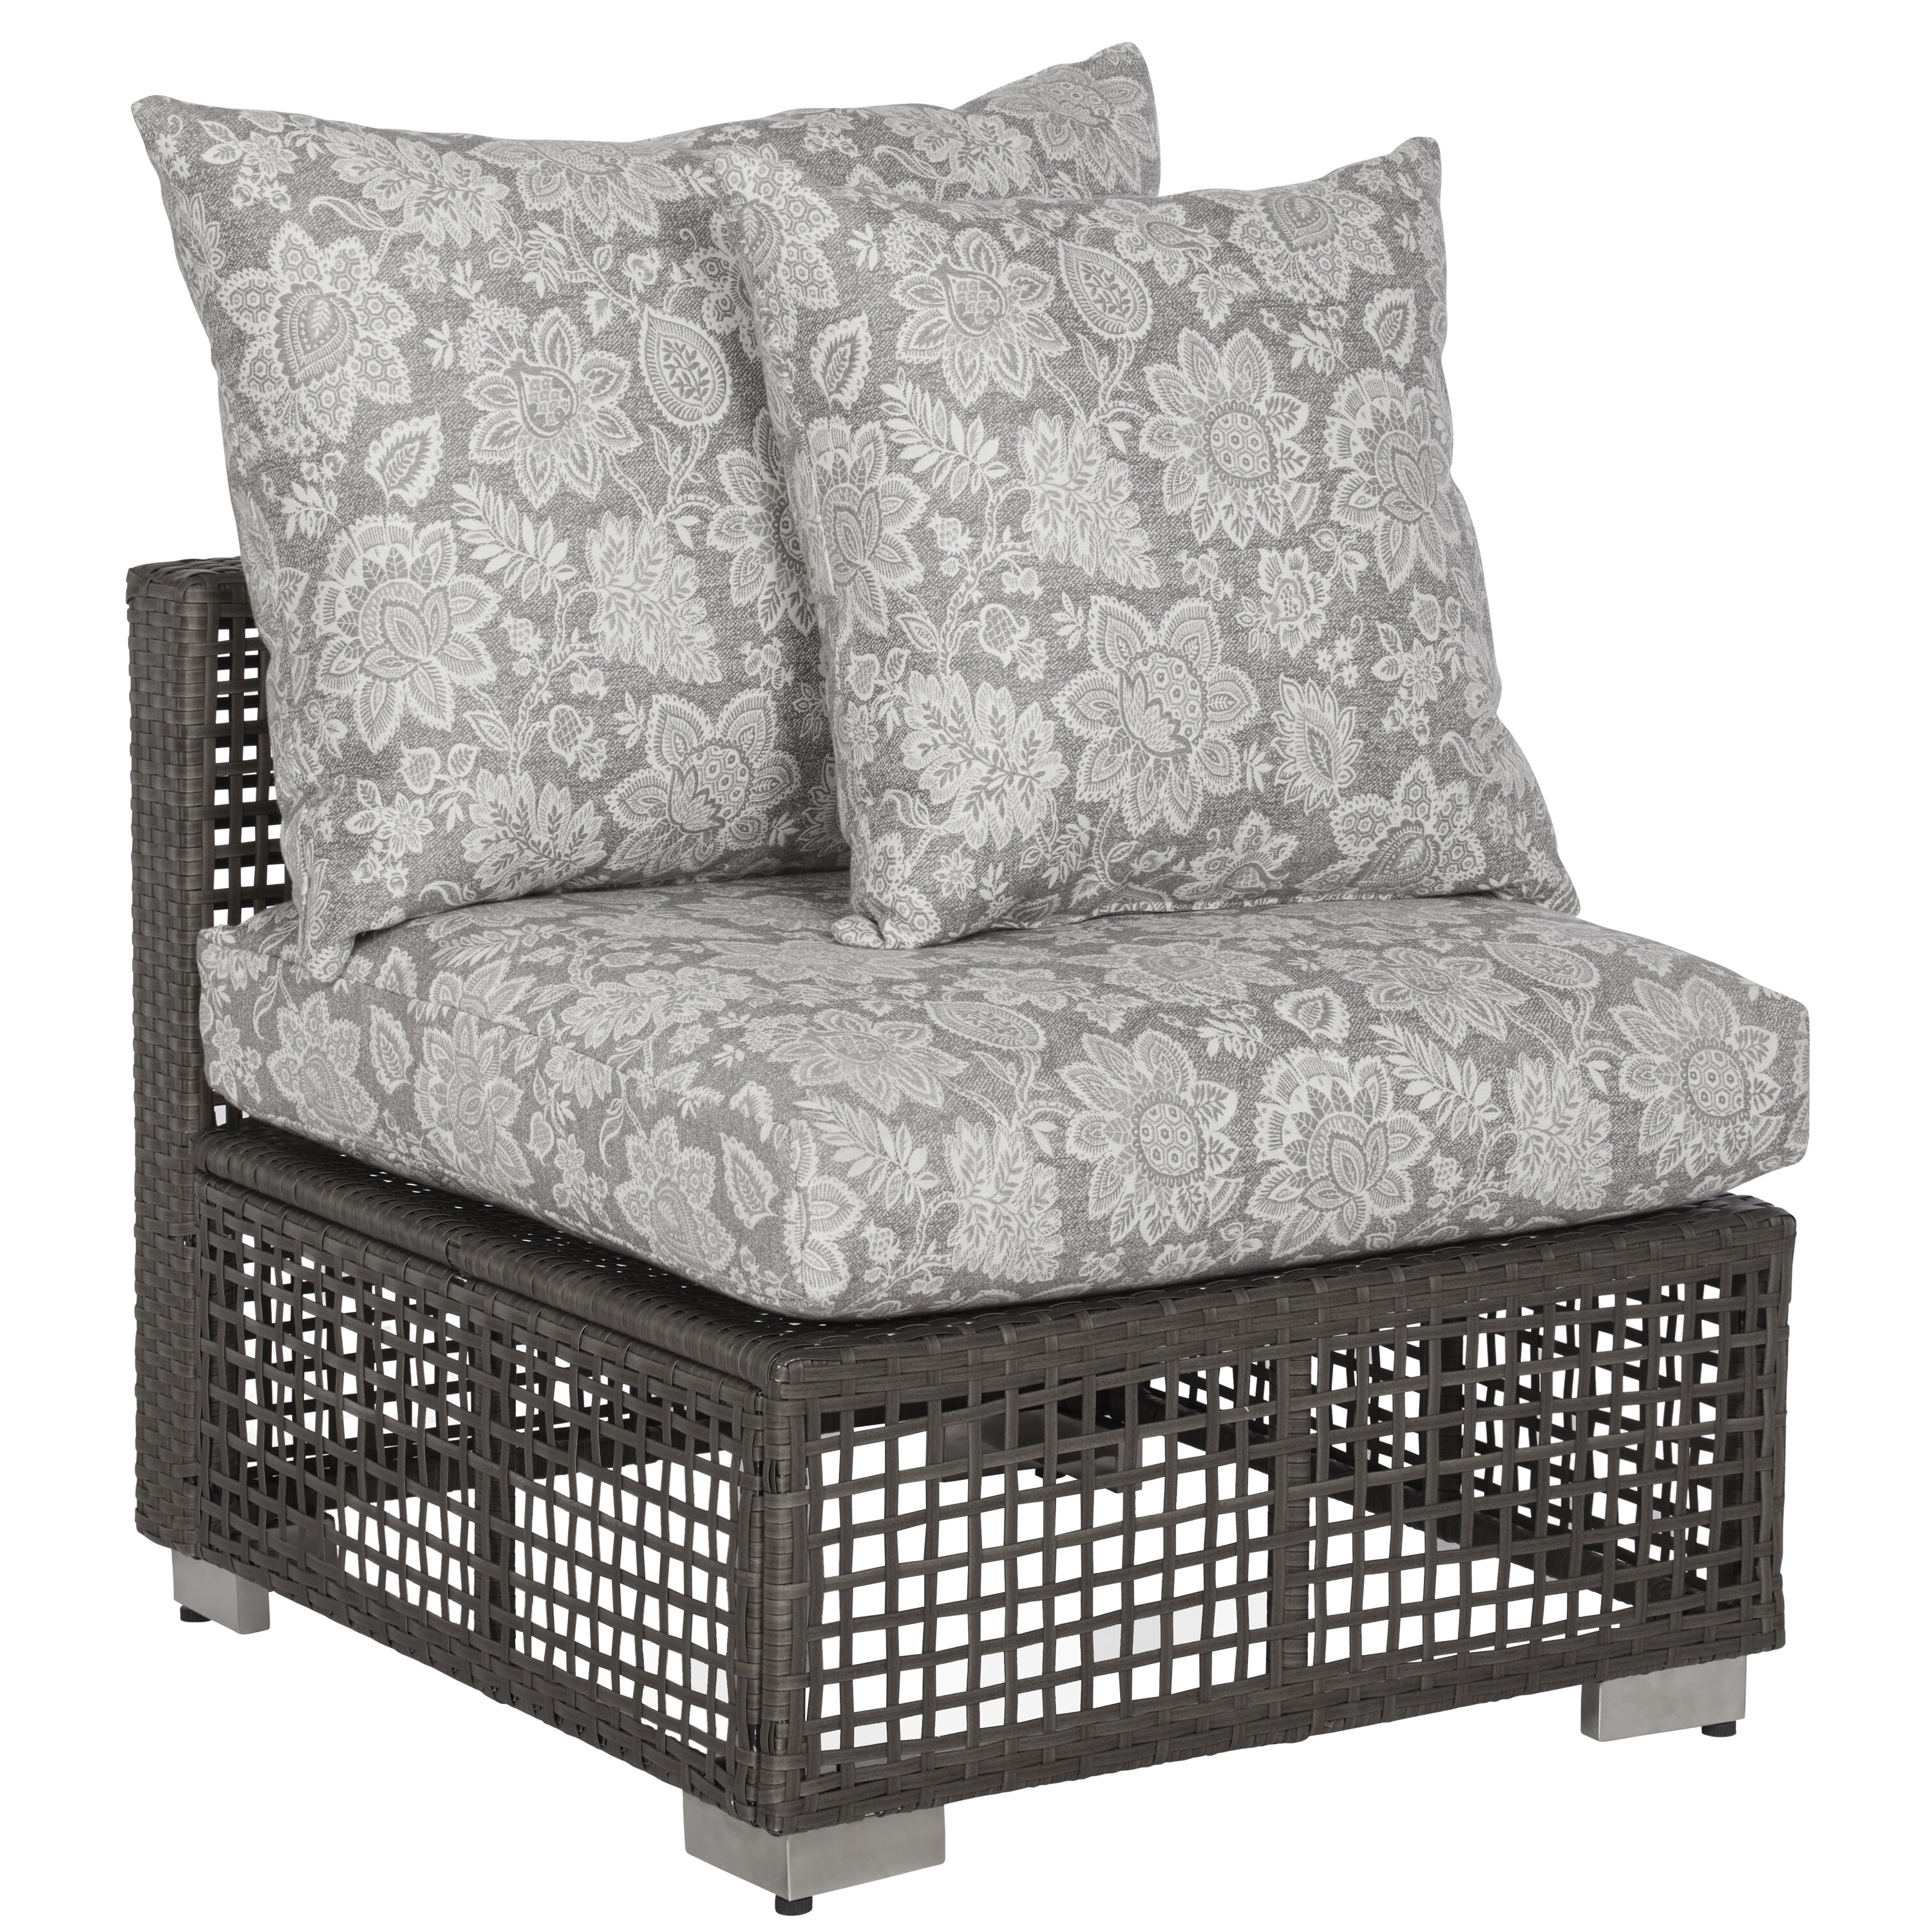 Well Liked Ivy Bronx Mcmanis Outdoor Open Weave Rattan Patio Chair With Inside Mcmanis Patio Sofas With Cushion (View 12 of 20)